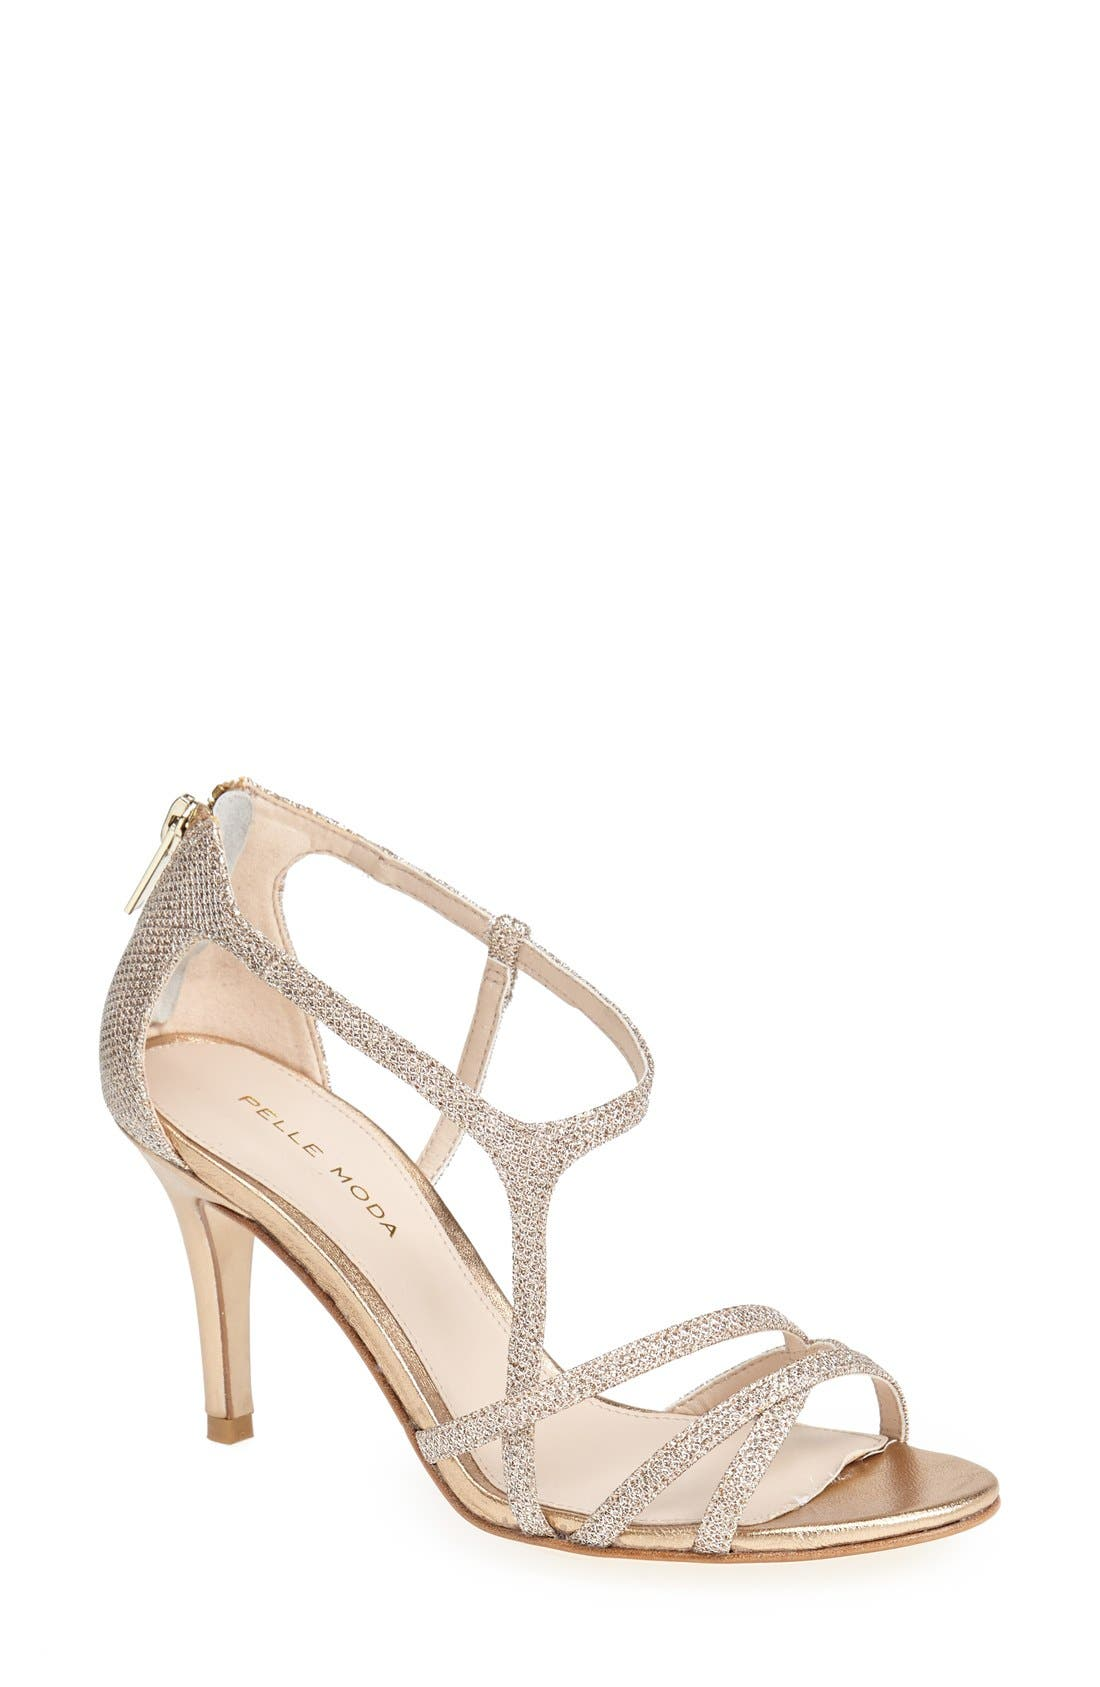 Alternate Image 1 Selected - Pelle Moda 'Ruby' Strappy Sandal (Women)